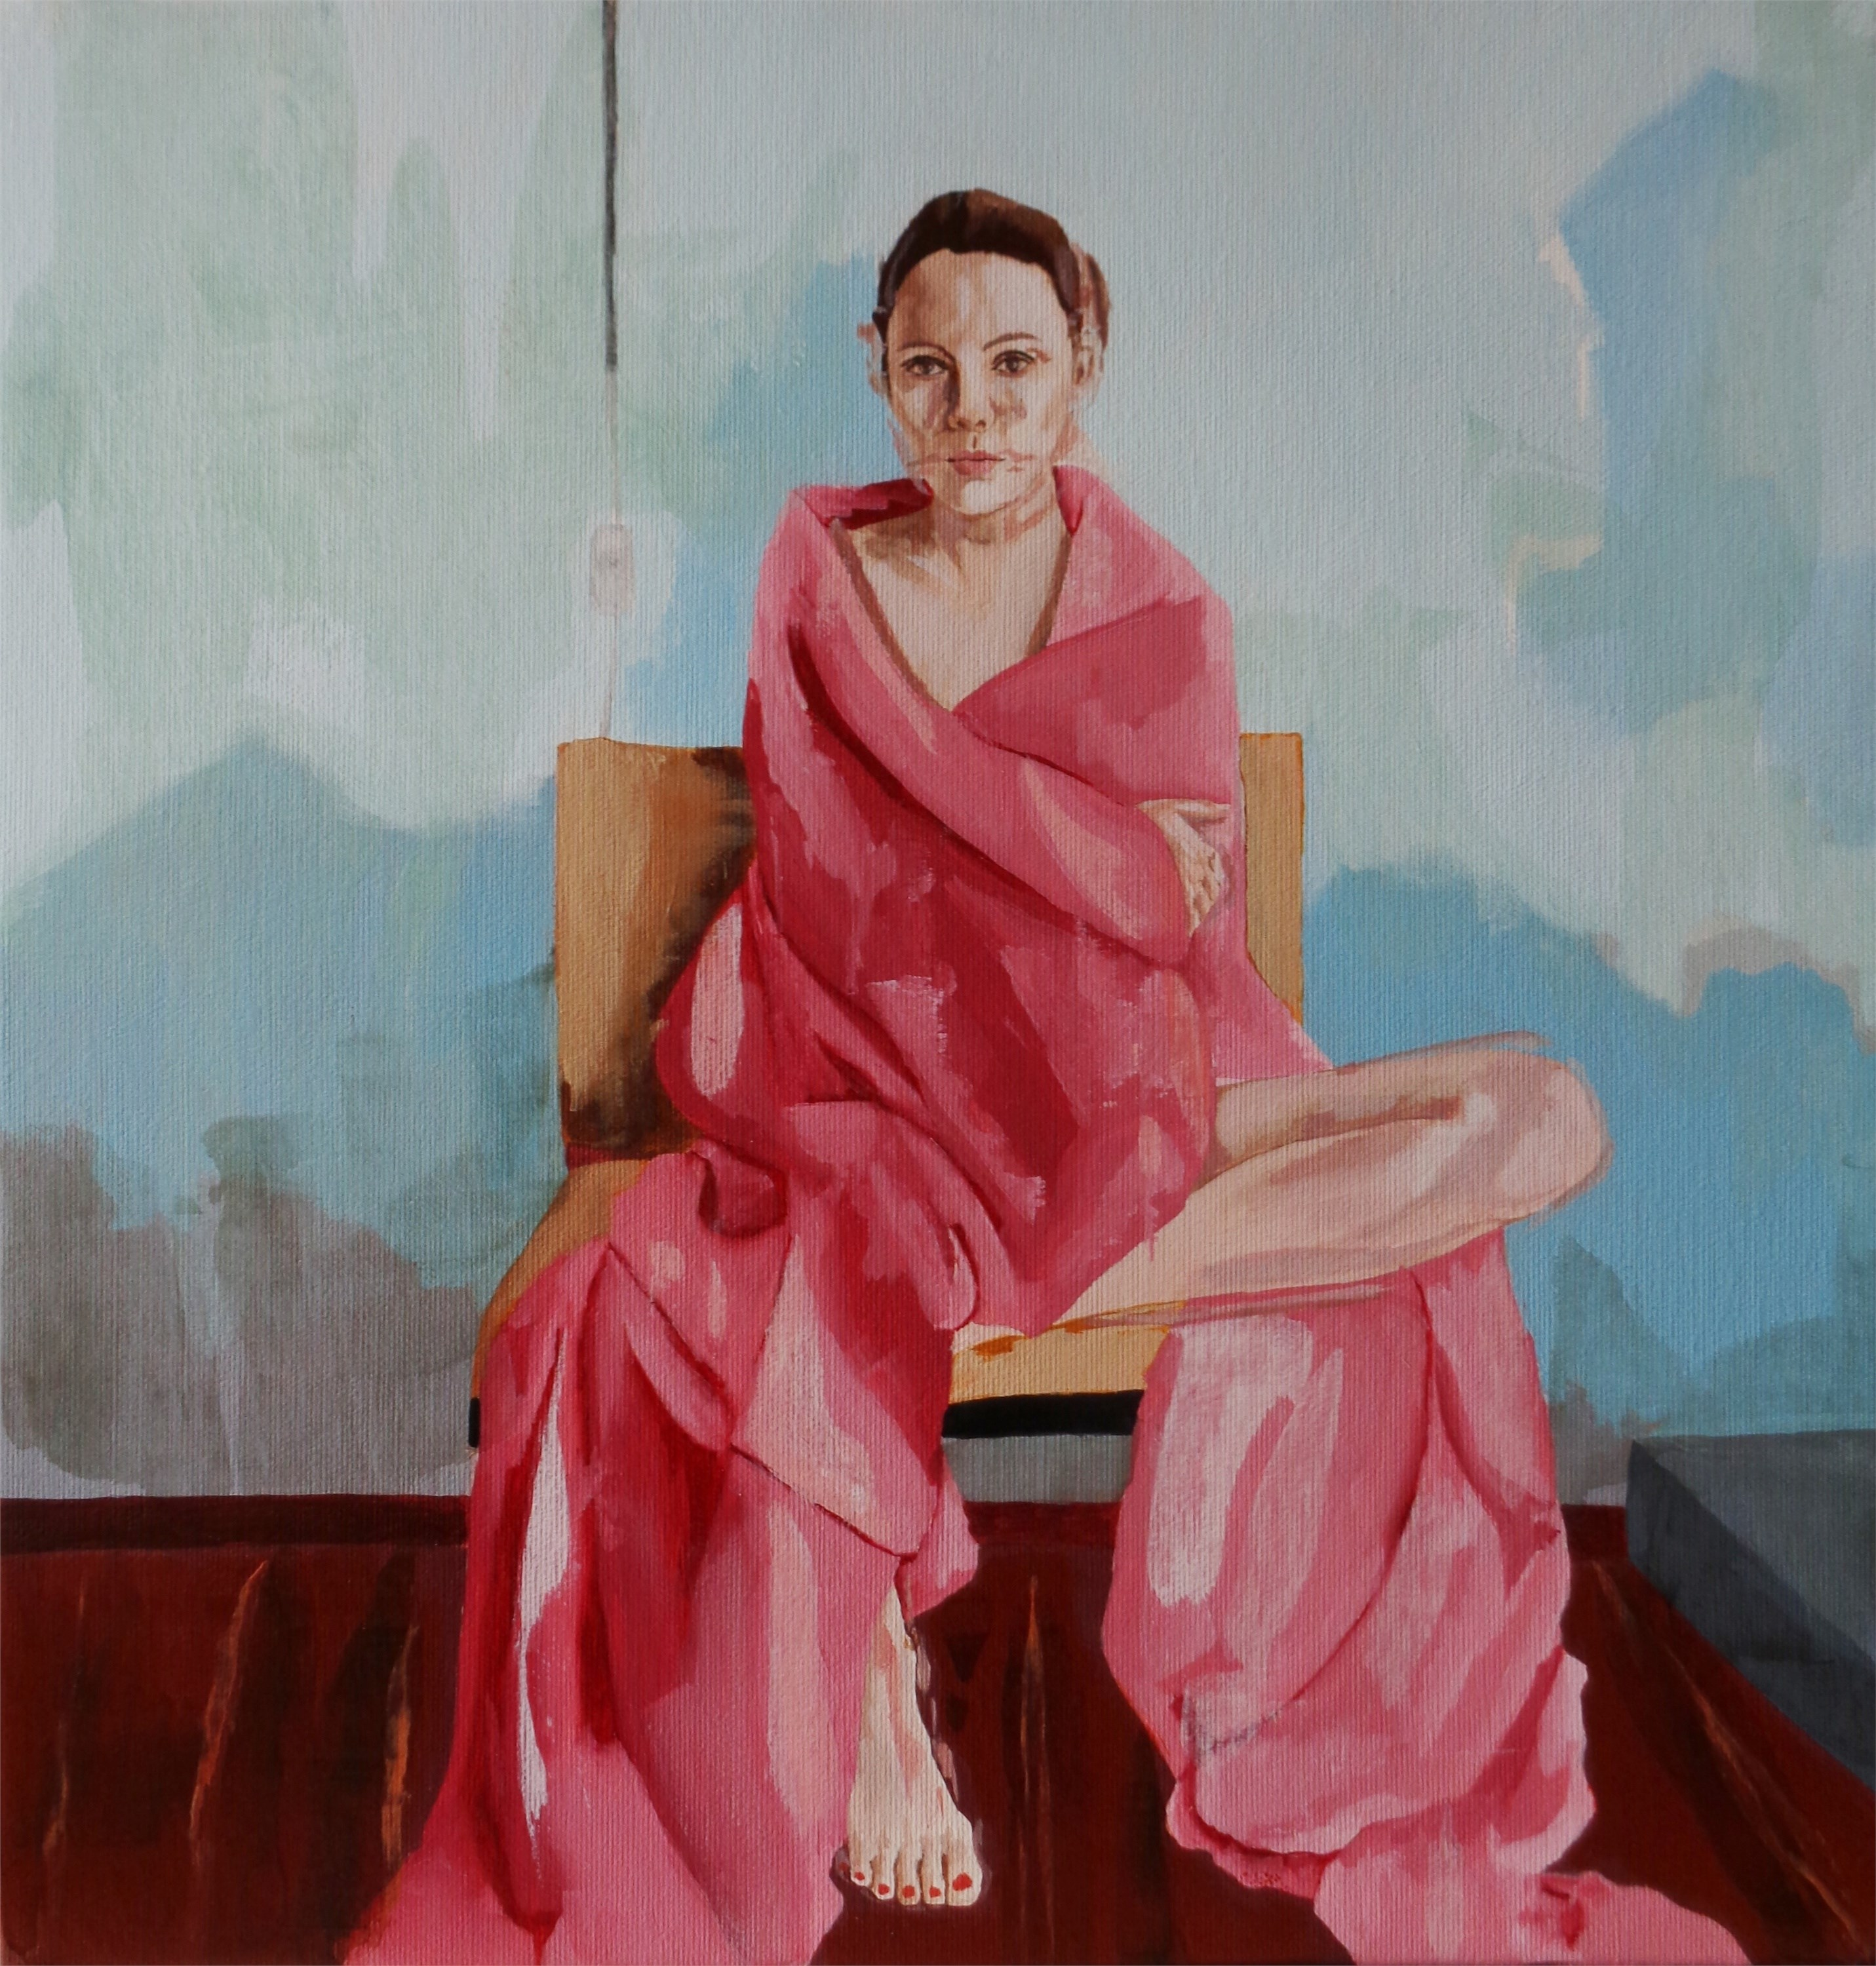 Red bathrobe, original Abstract Oil Painting by João Teixeira